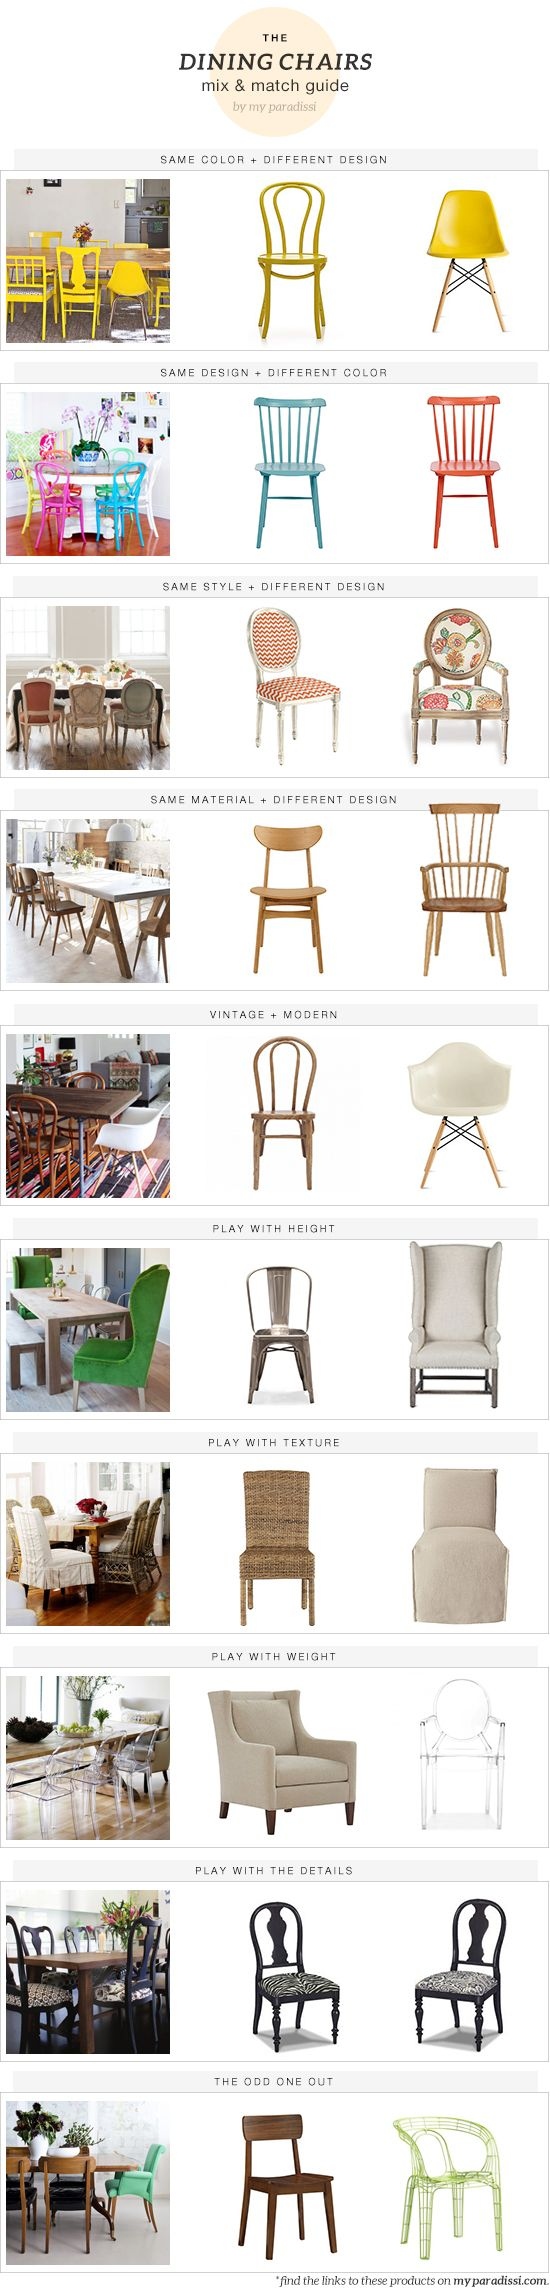 ~The dining chairs mix and match guide~ My Paradissi